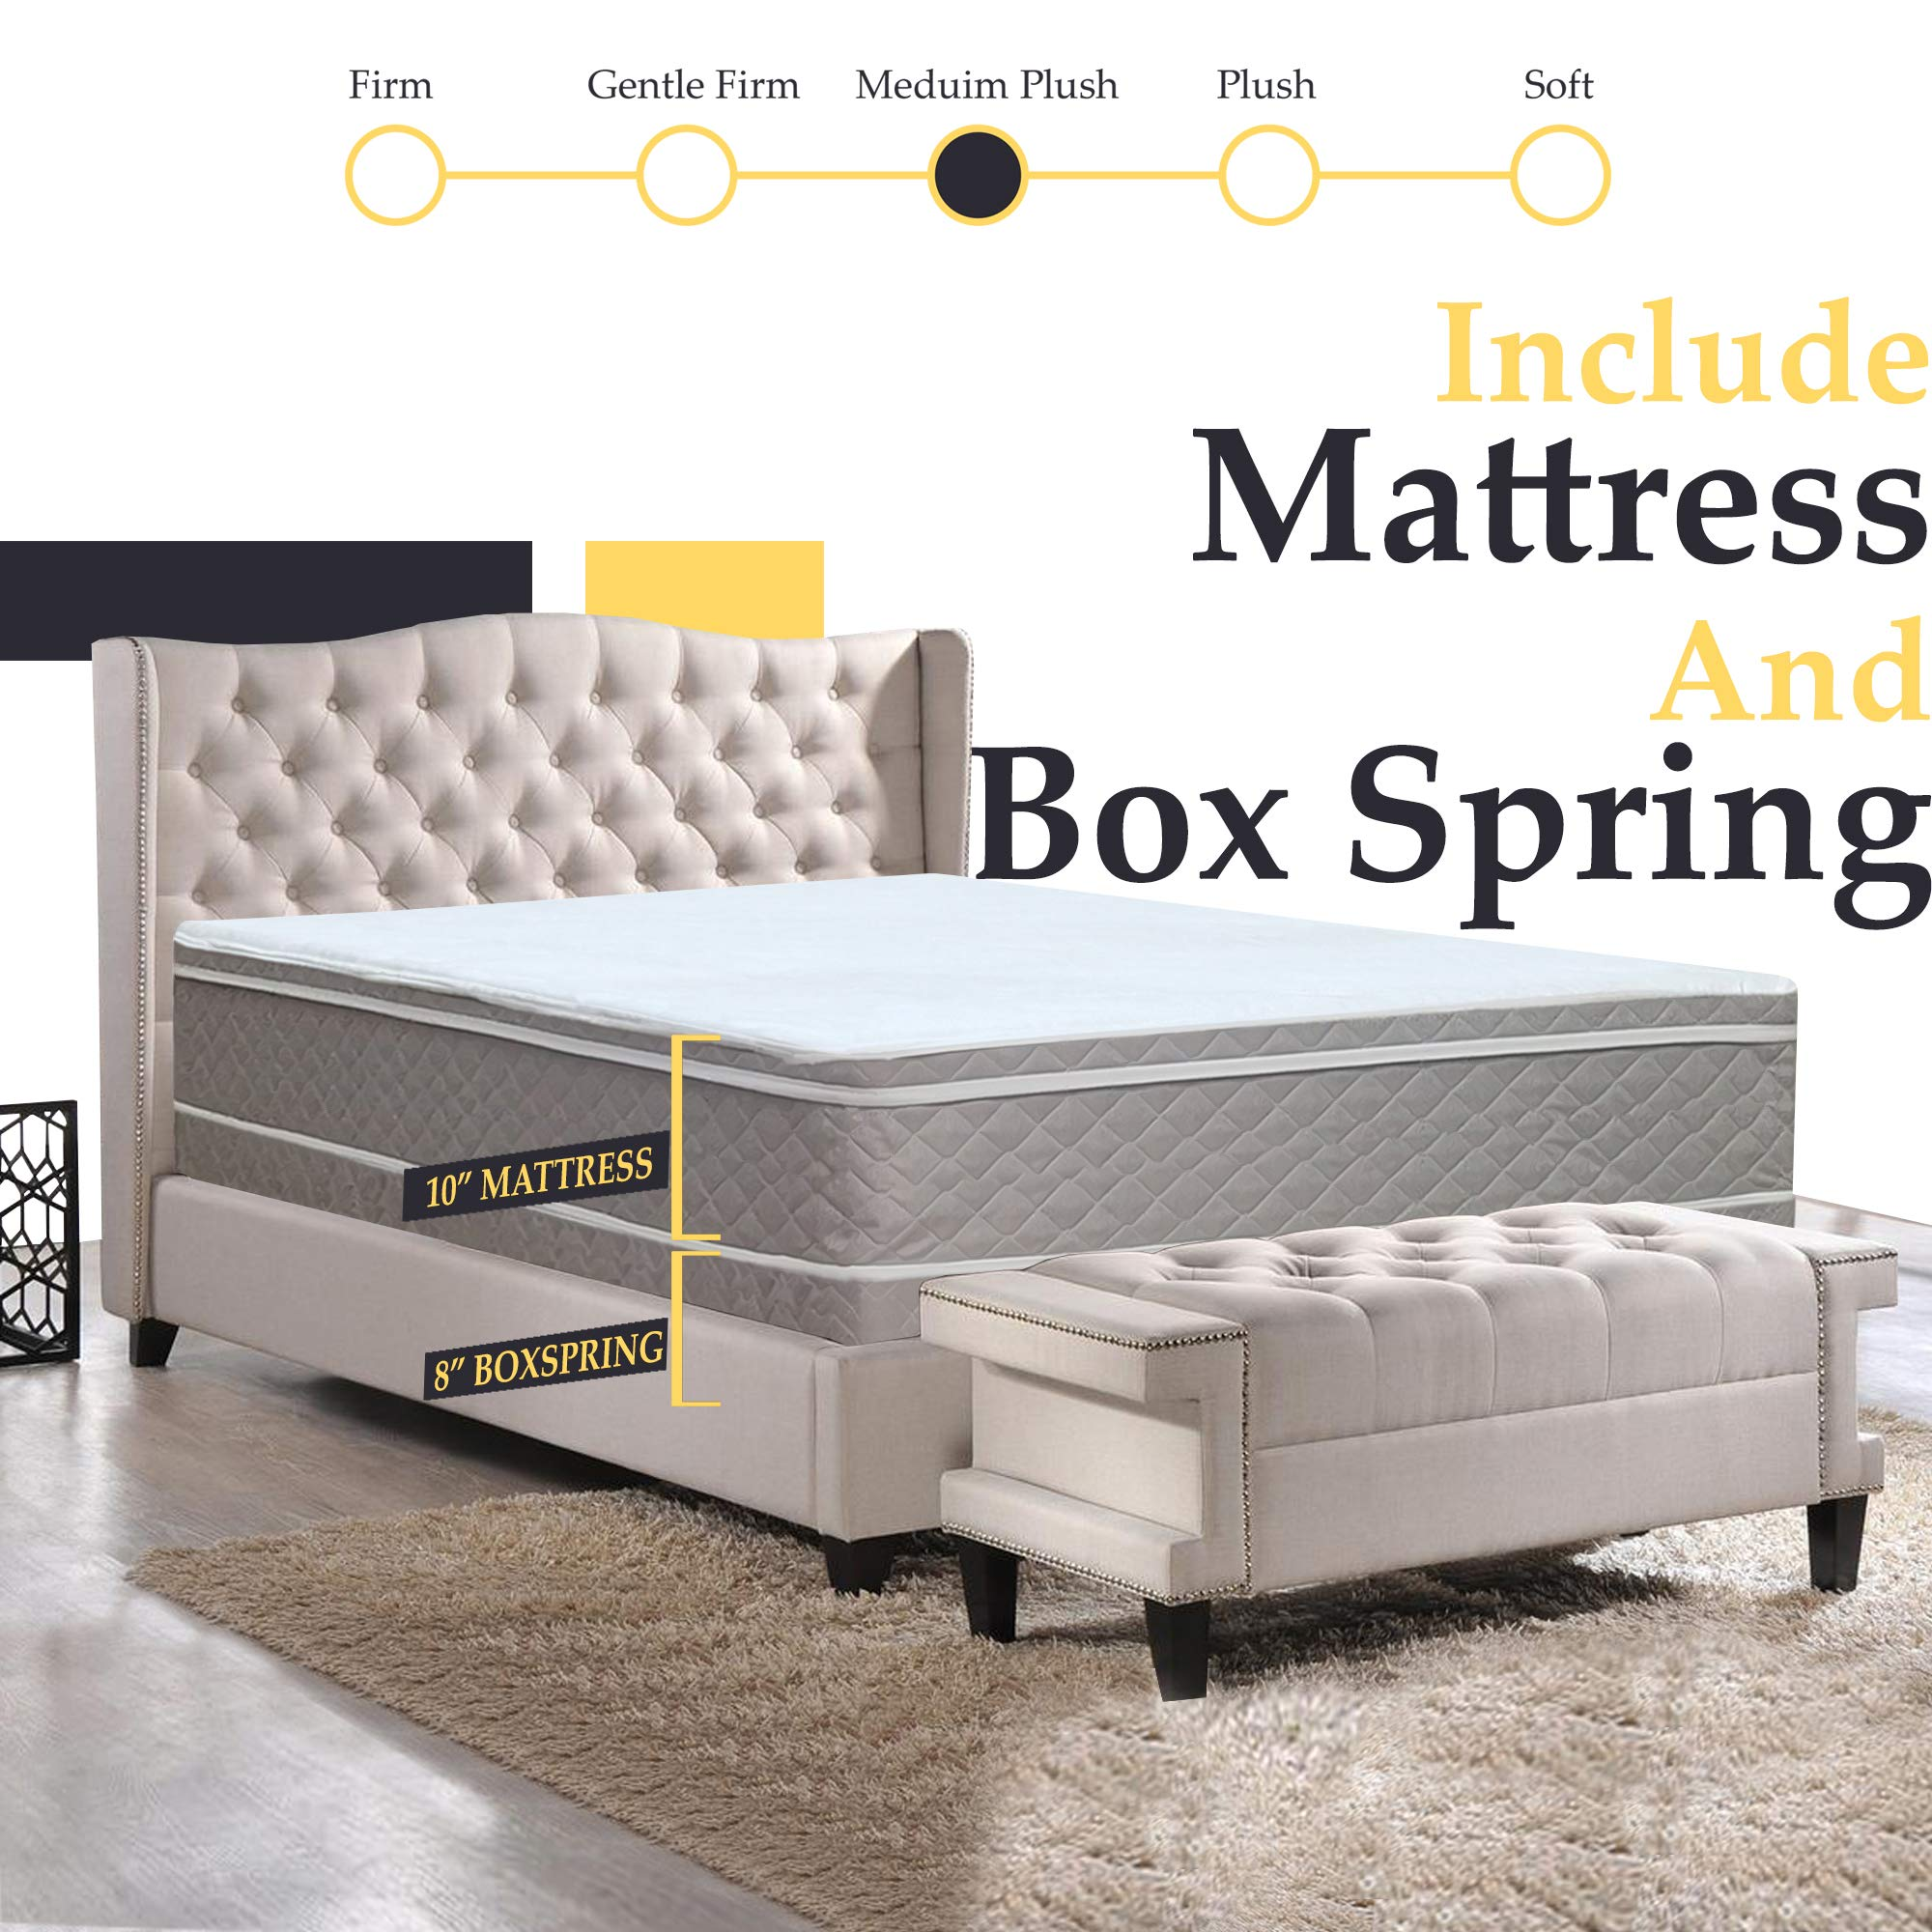 10-Inch Medium Plush Eurotop Pillowtop Innerspring Mattress And 8-Inch Fully Assembled Wood Boxspring /Foundation Set, by Nutan